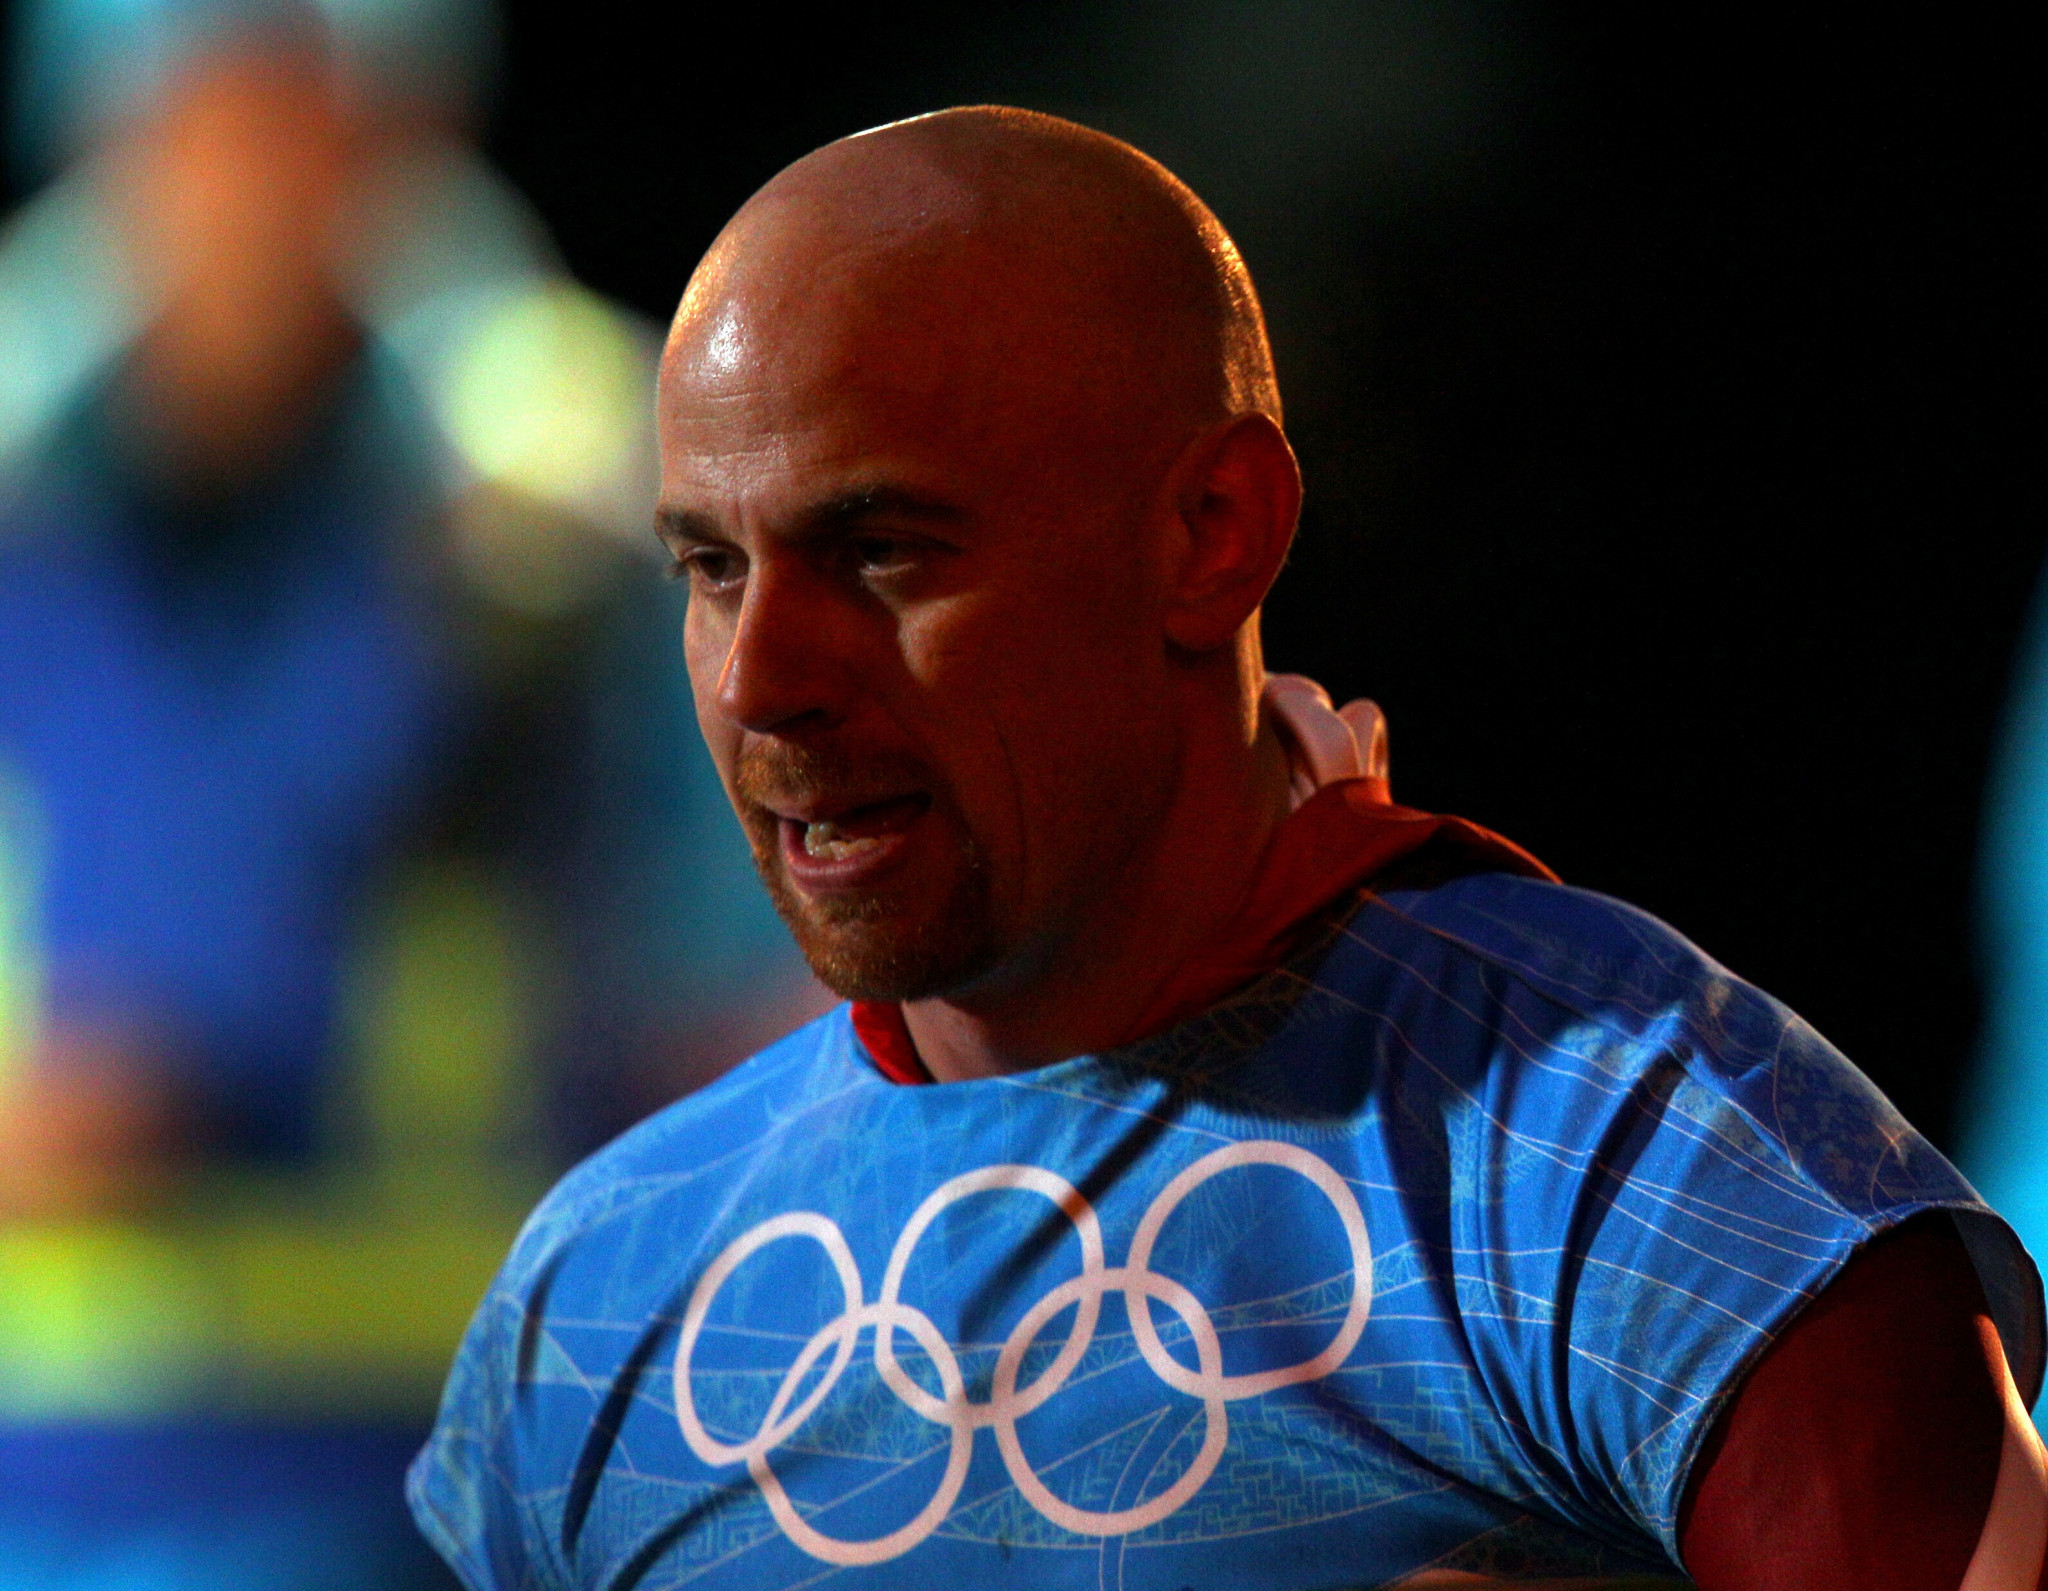 Zach Lund, competing here at Vancouver 2010, has joined the Ghana set-up ©Getty Images